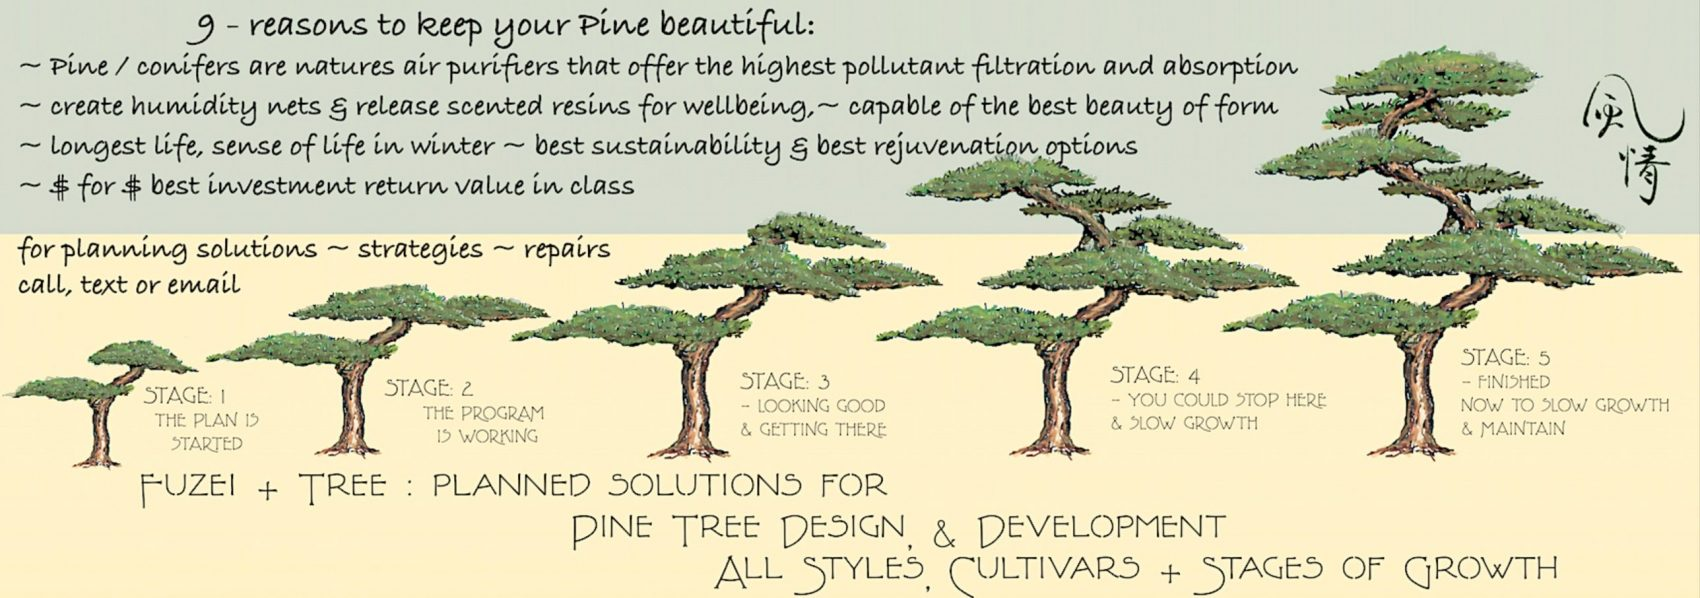 pine banner showing step by 5 step pine tree development